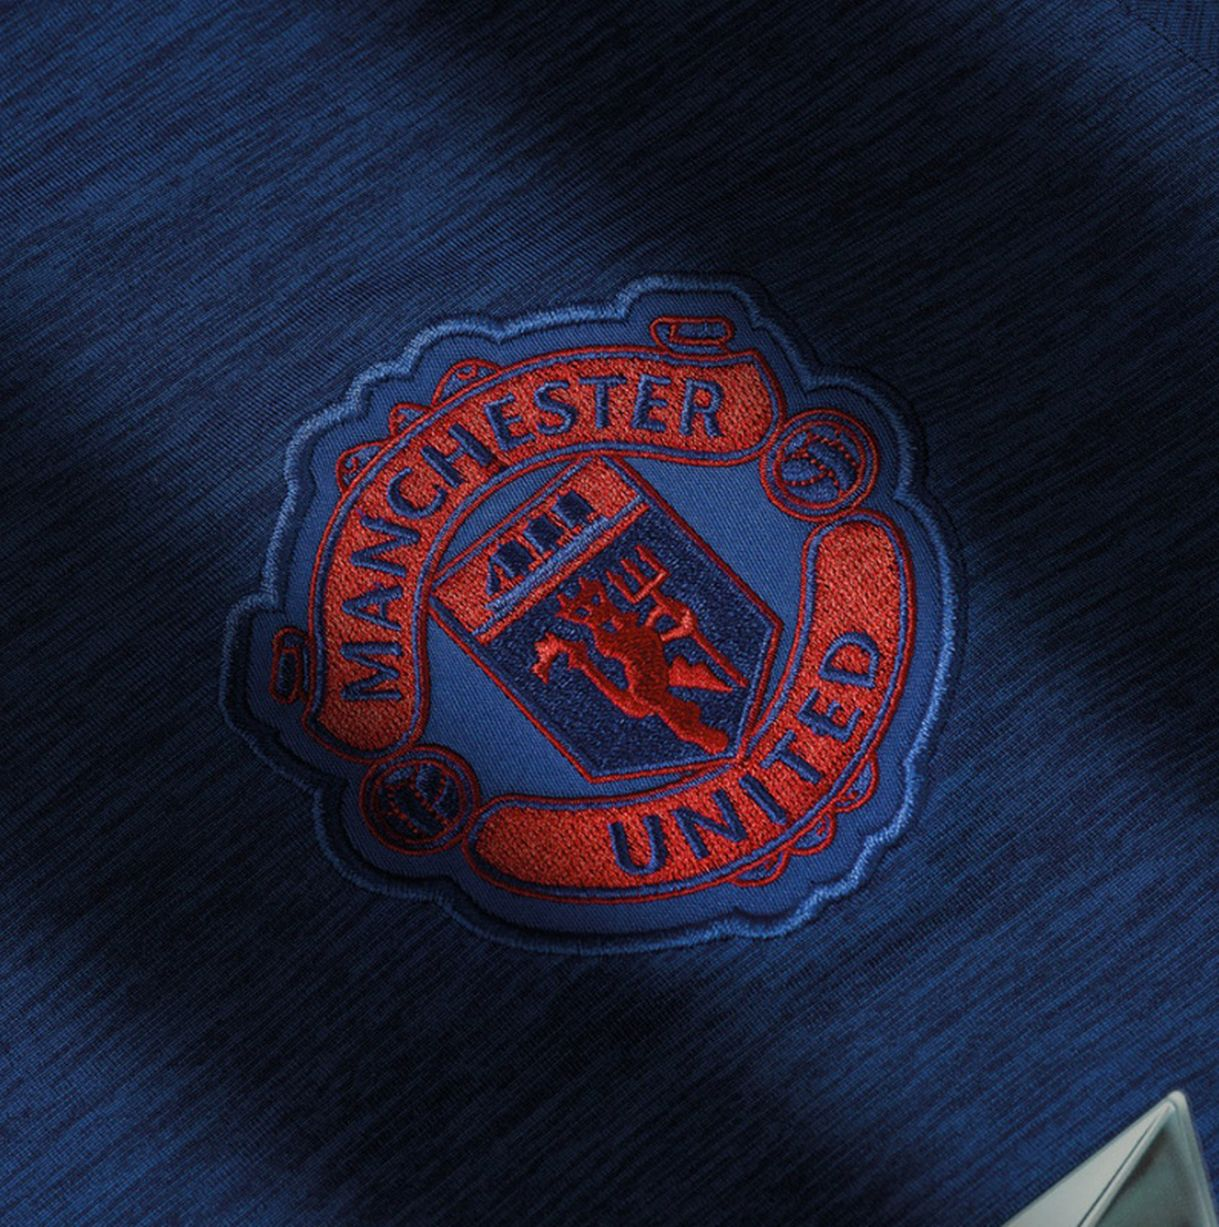 Crest Manchester-United-Away-Shirt-2016-17